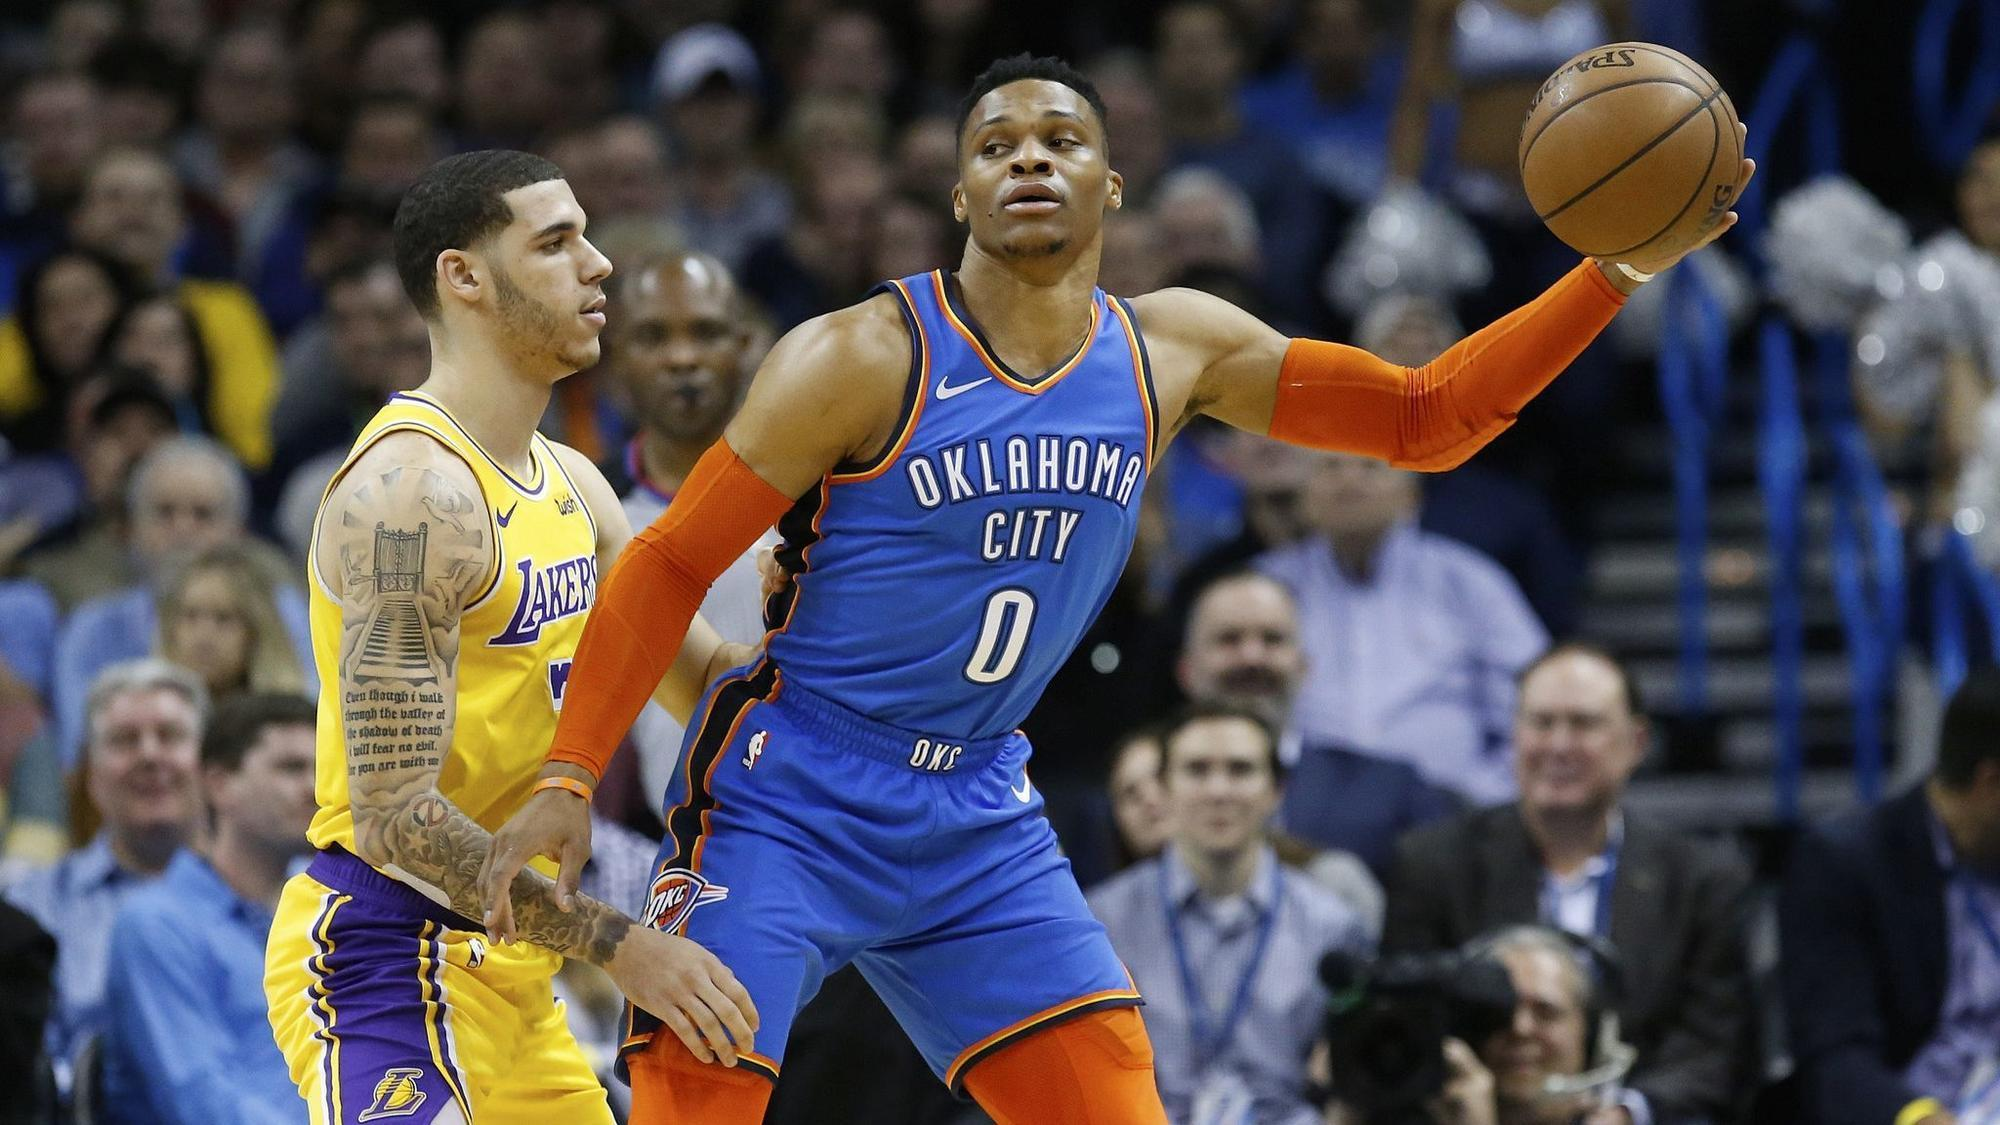 Lakers erase 17-point deficit in overtime victory over the Thunder